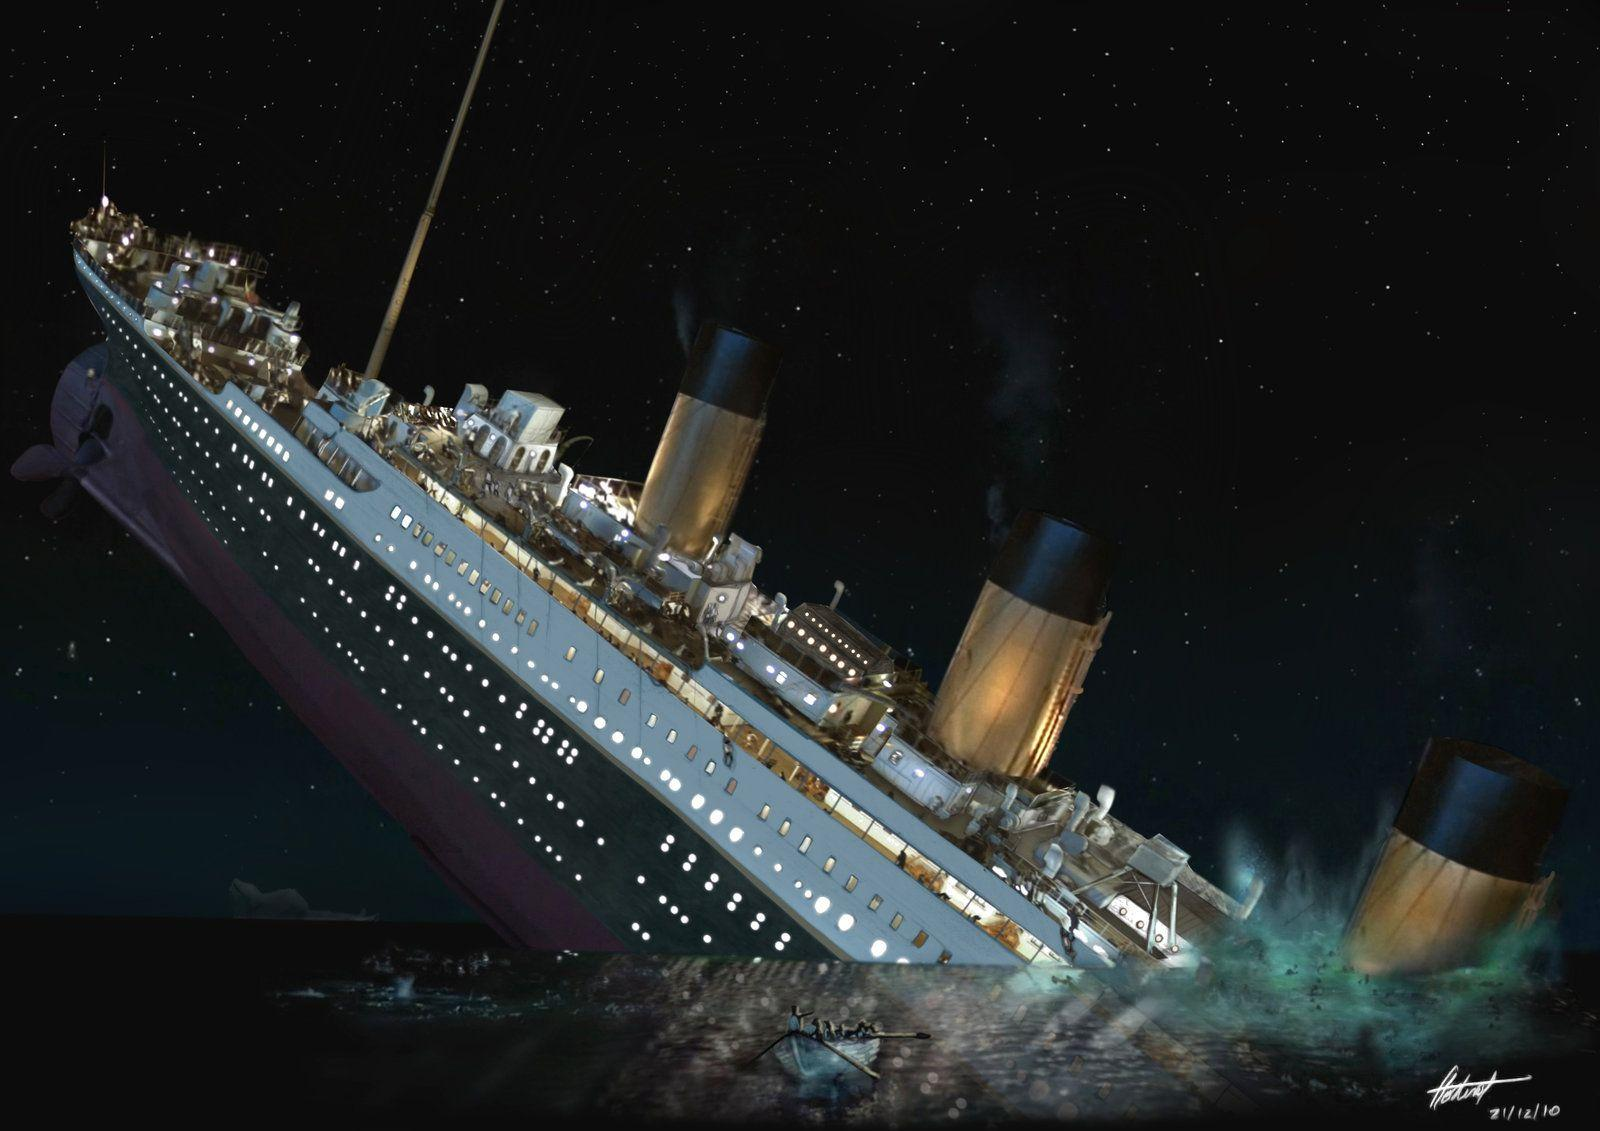 Titanic Movie Sinking - Music and Movie Wallpapers (13760) ilikewalls.